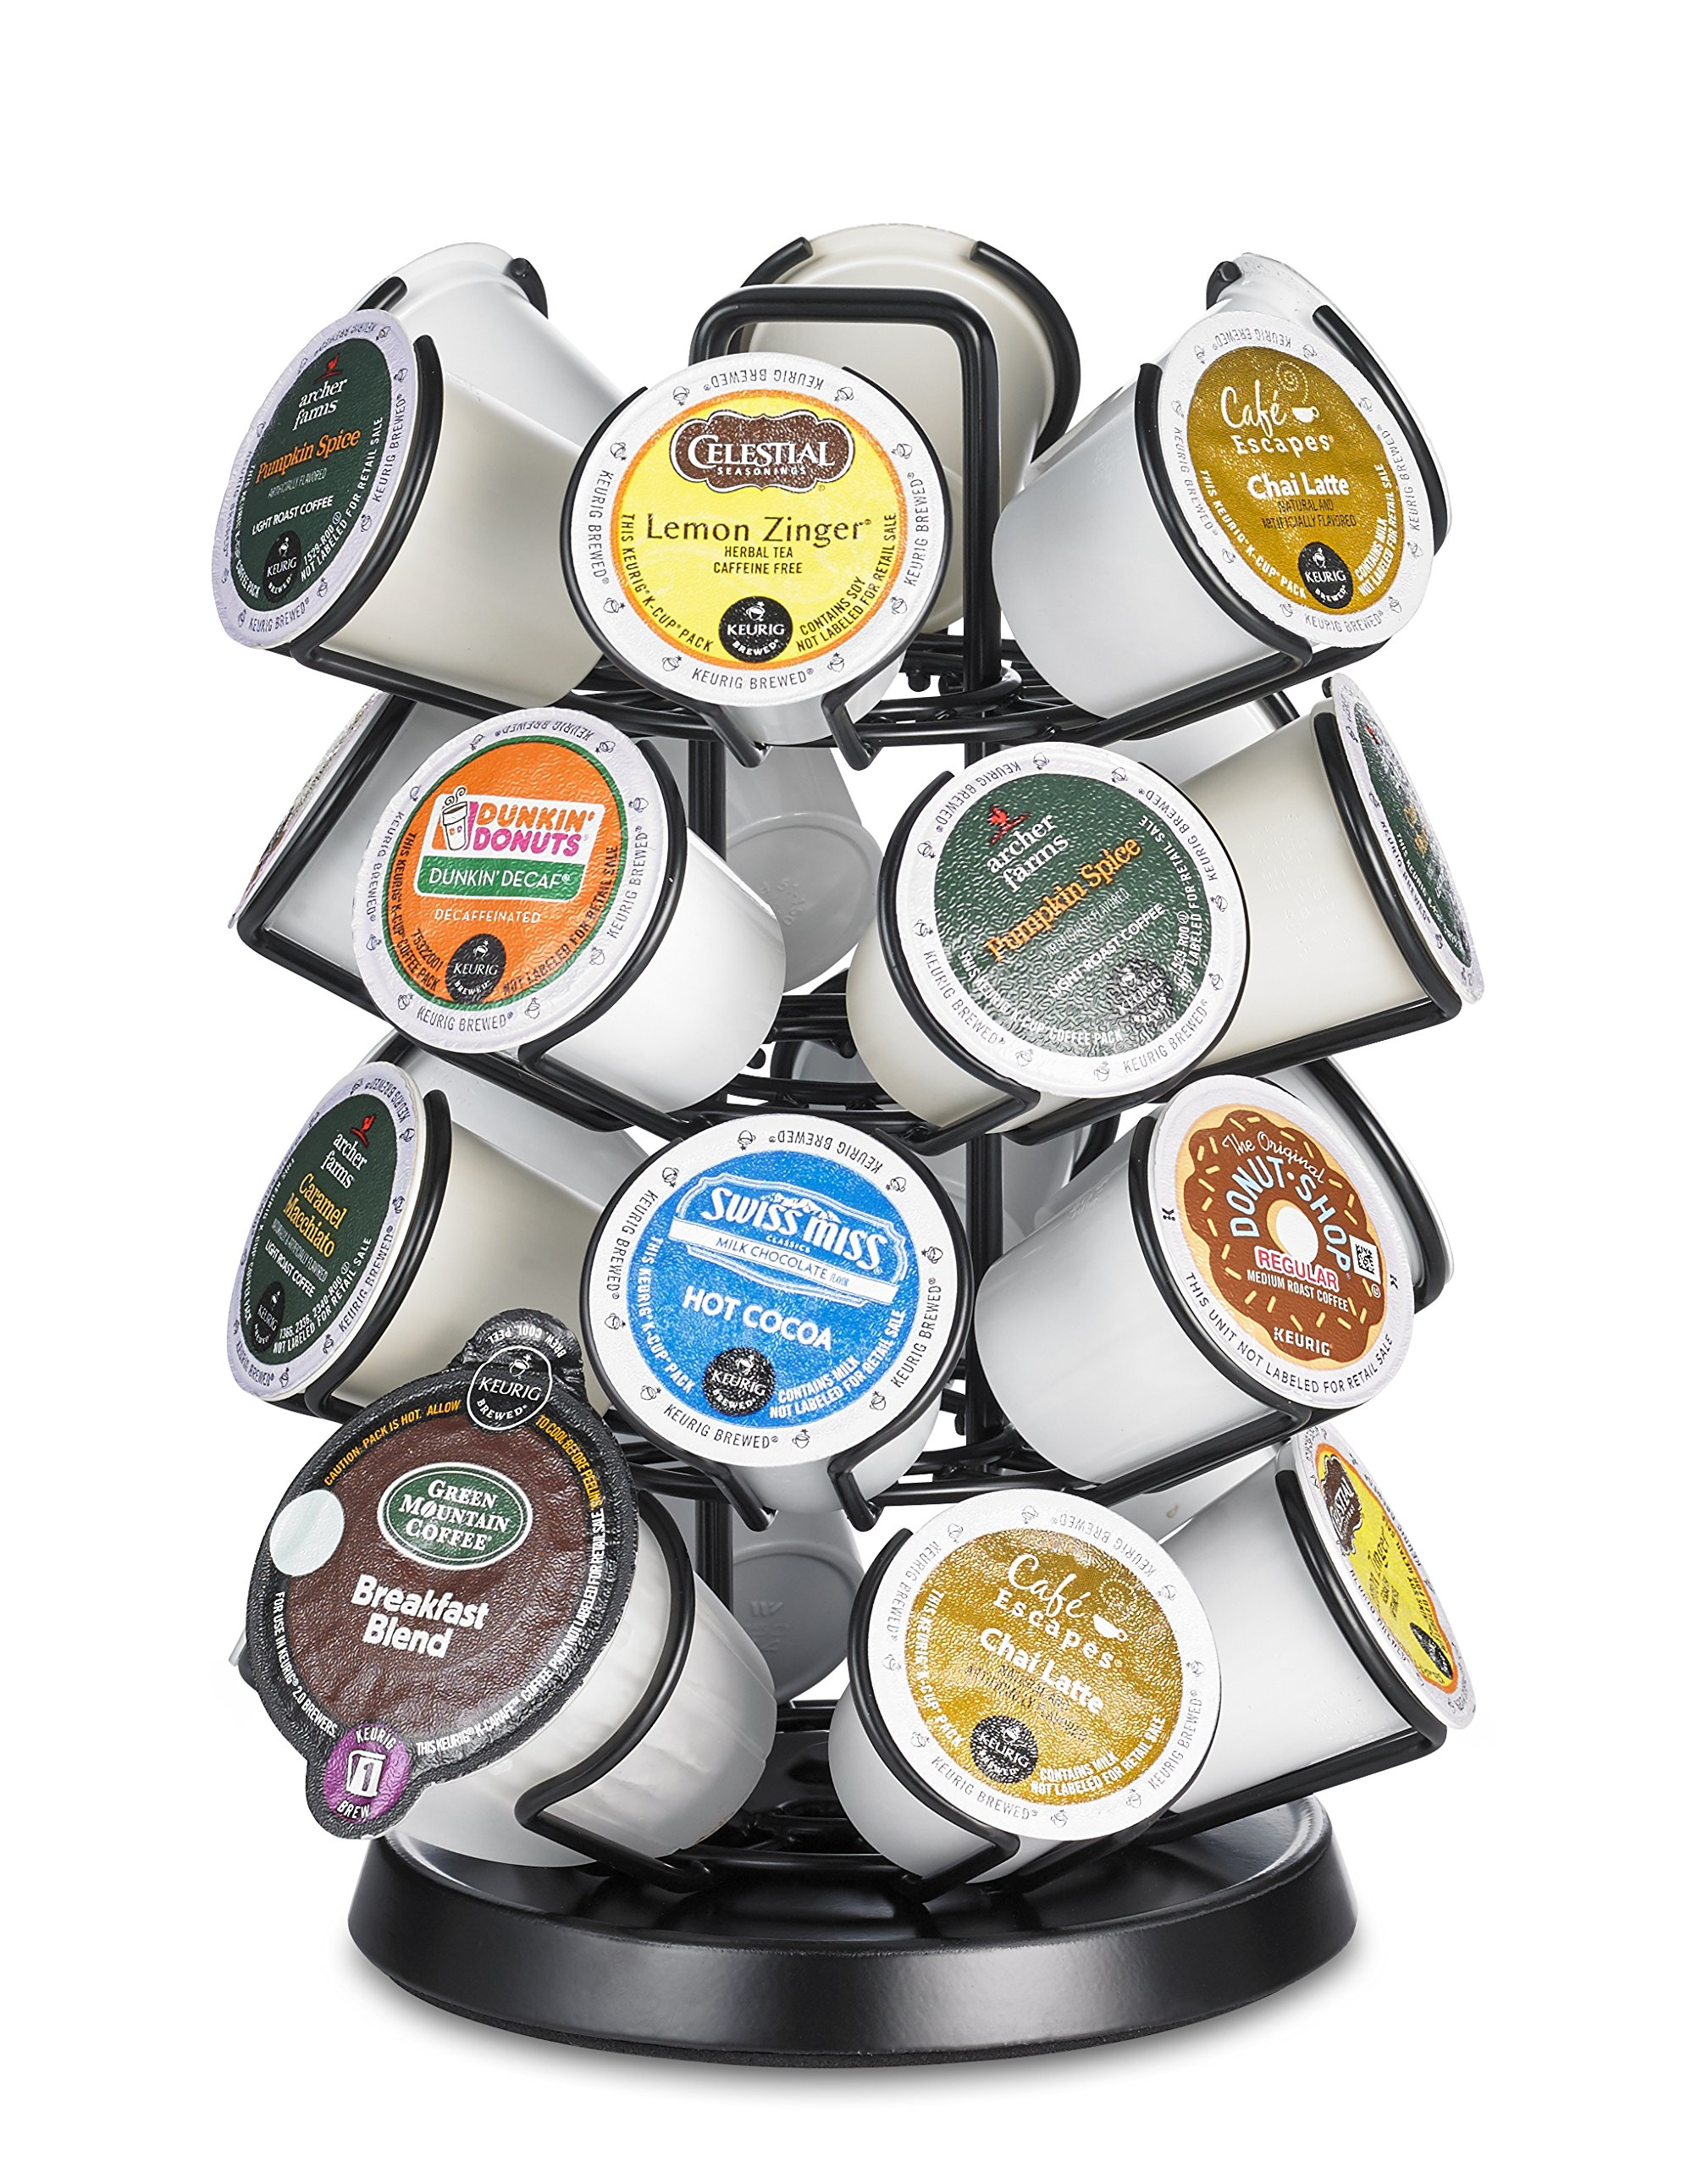 K Cup Storage Deluxe Steel Spinning Carousel, 24 Ct. Keurig, Black by Java Concepts